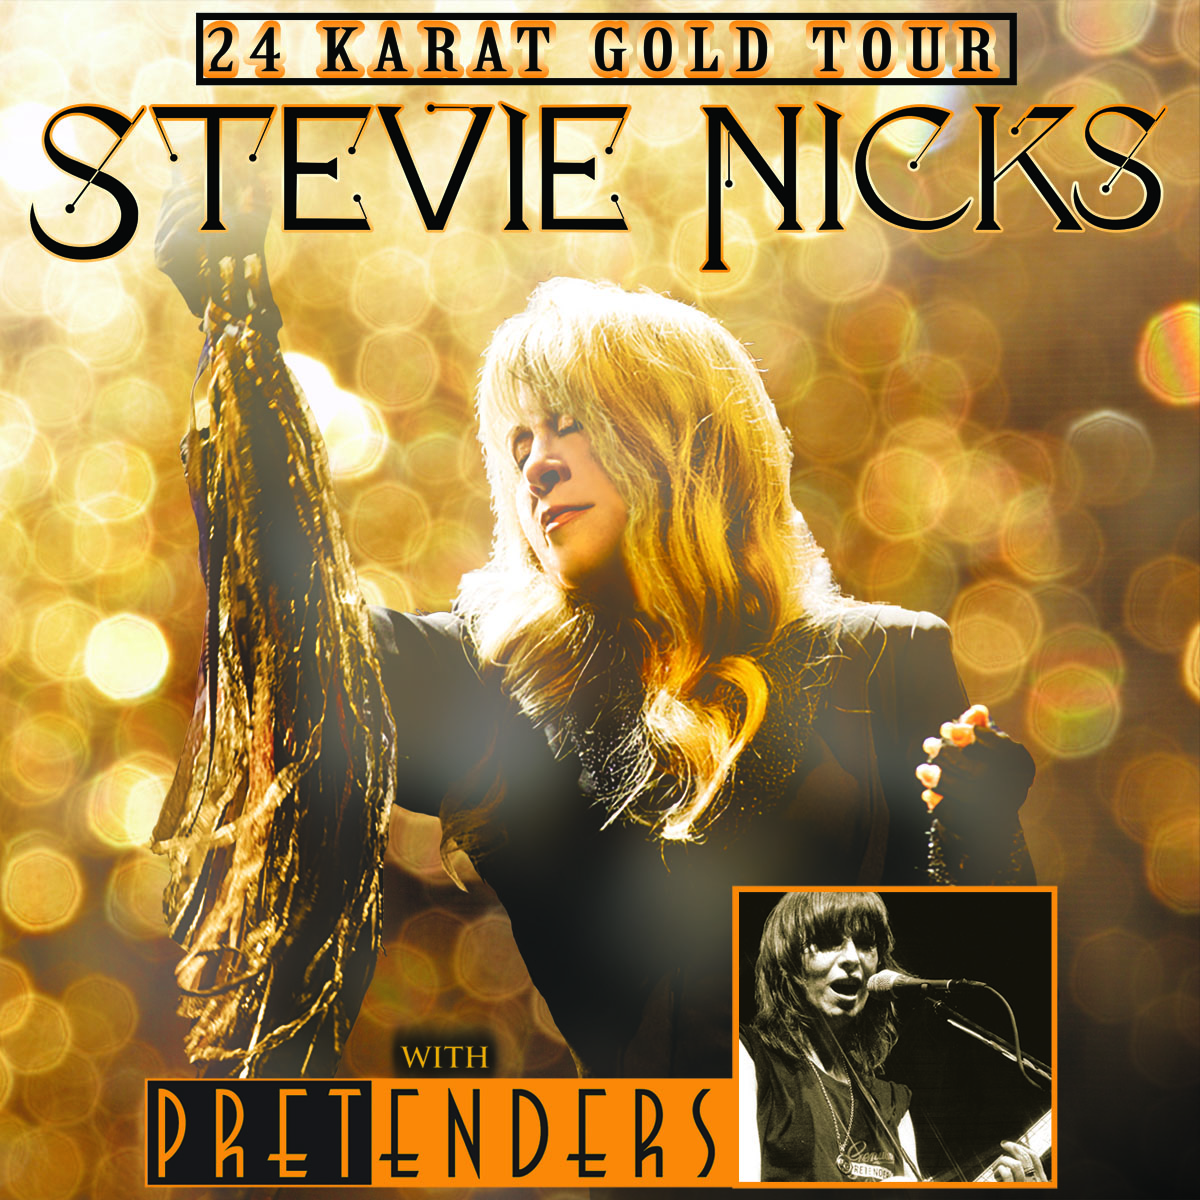 Stevie Nicks and The Pretenders 2016: 24 Karat Gold Tour